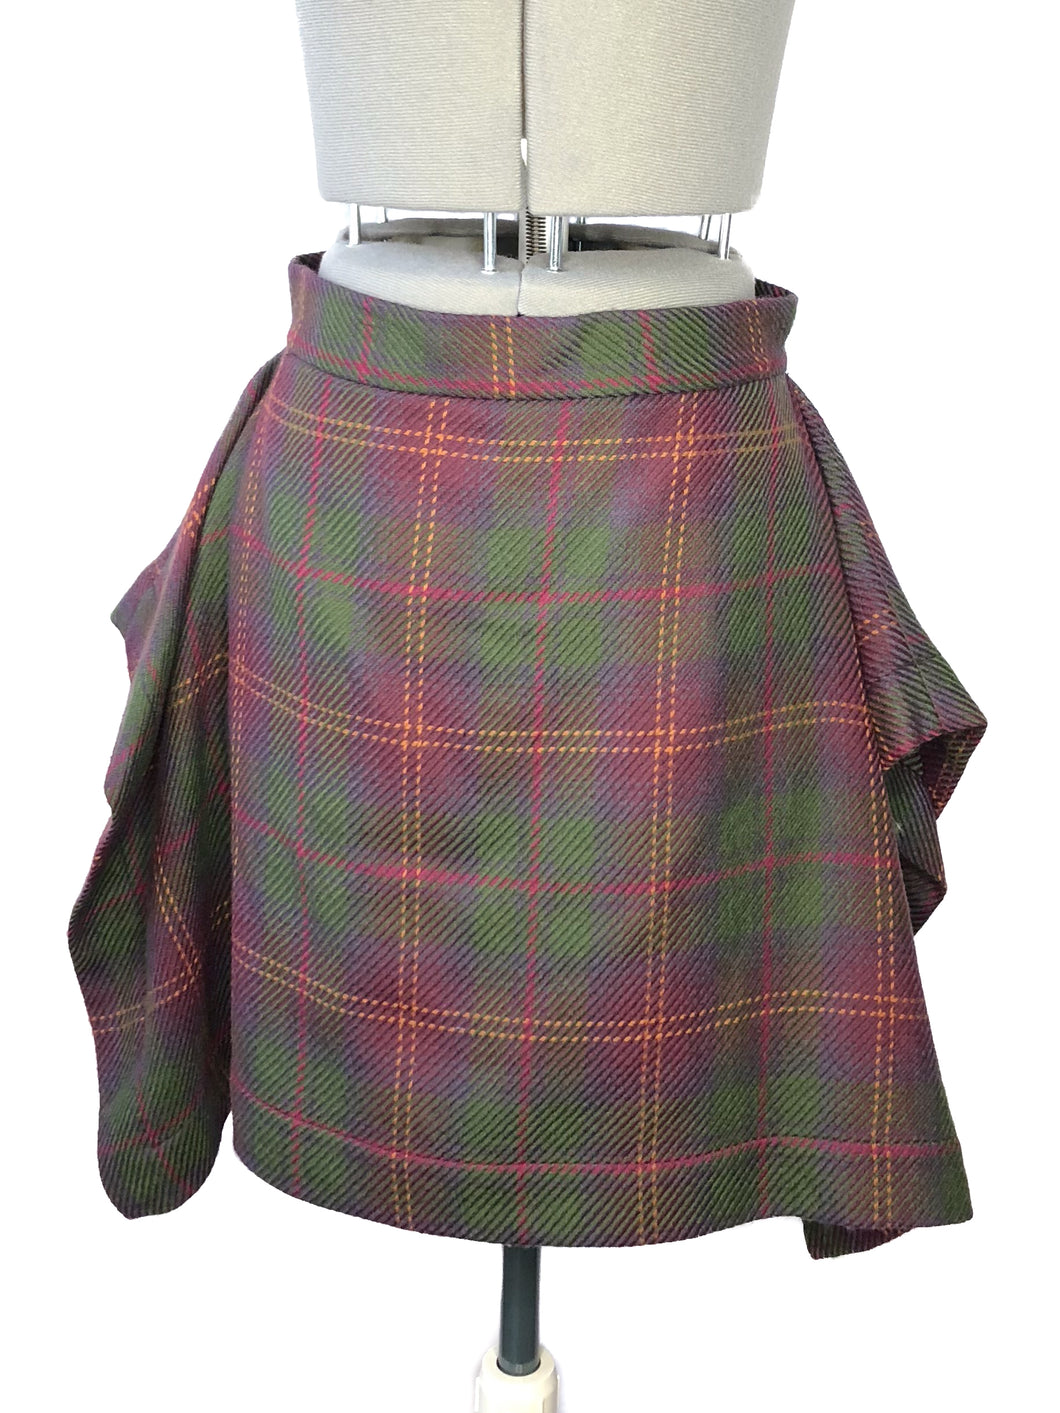 Vivienne Westwood Anglomania Red Green Tartan Folded Skirt